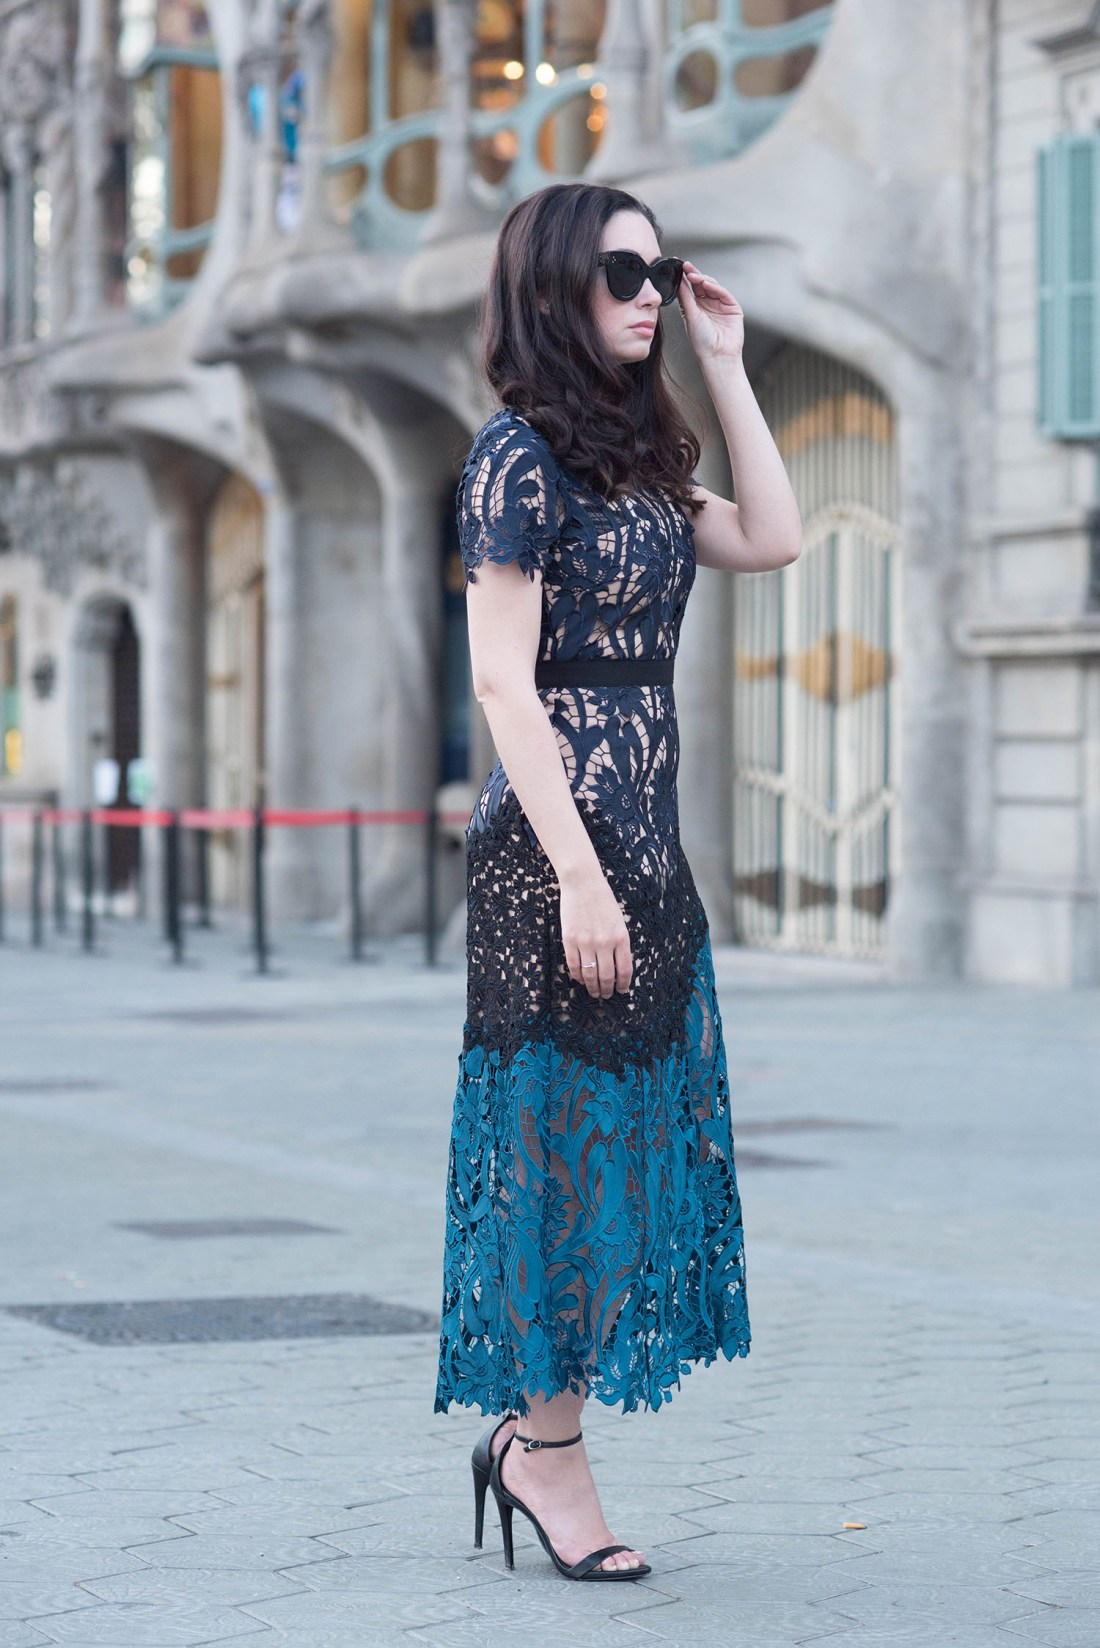 Barcelona street style on fashion blogger Cee Fardoe of Coco & Vera, wearing Self-Portrait